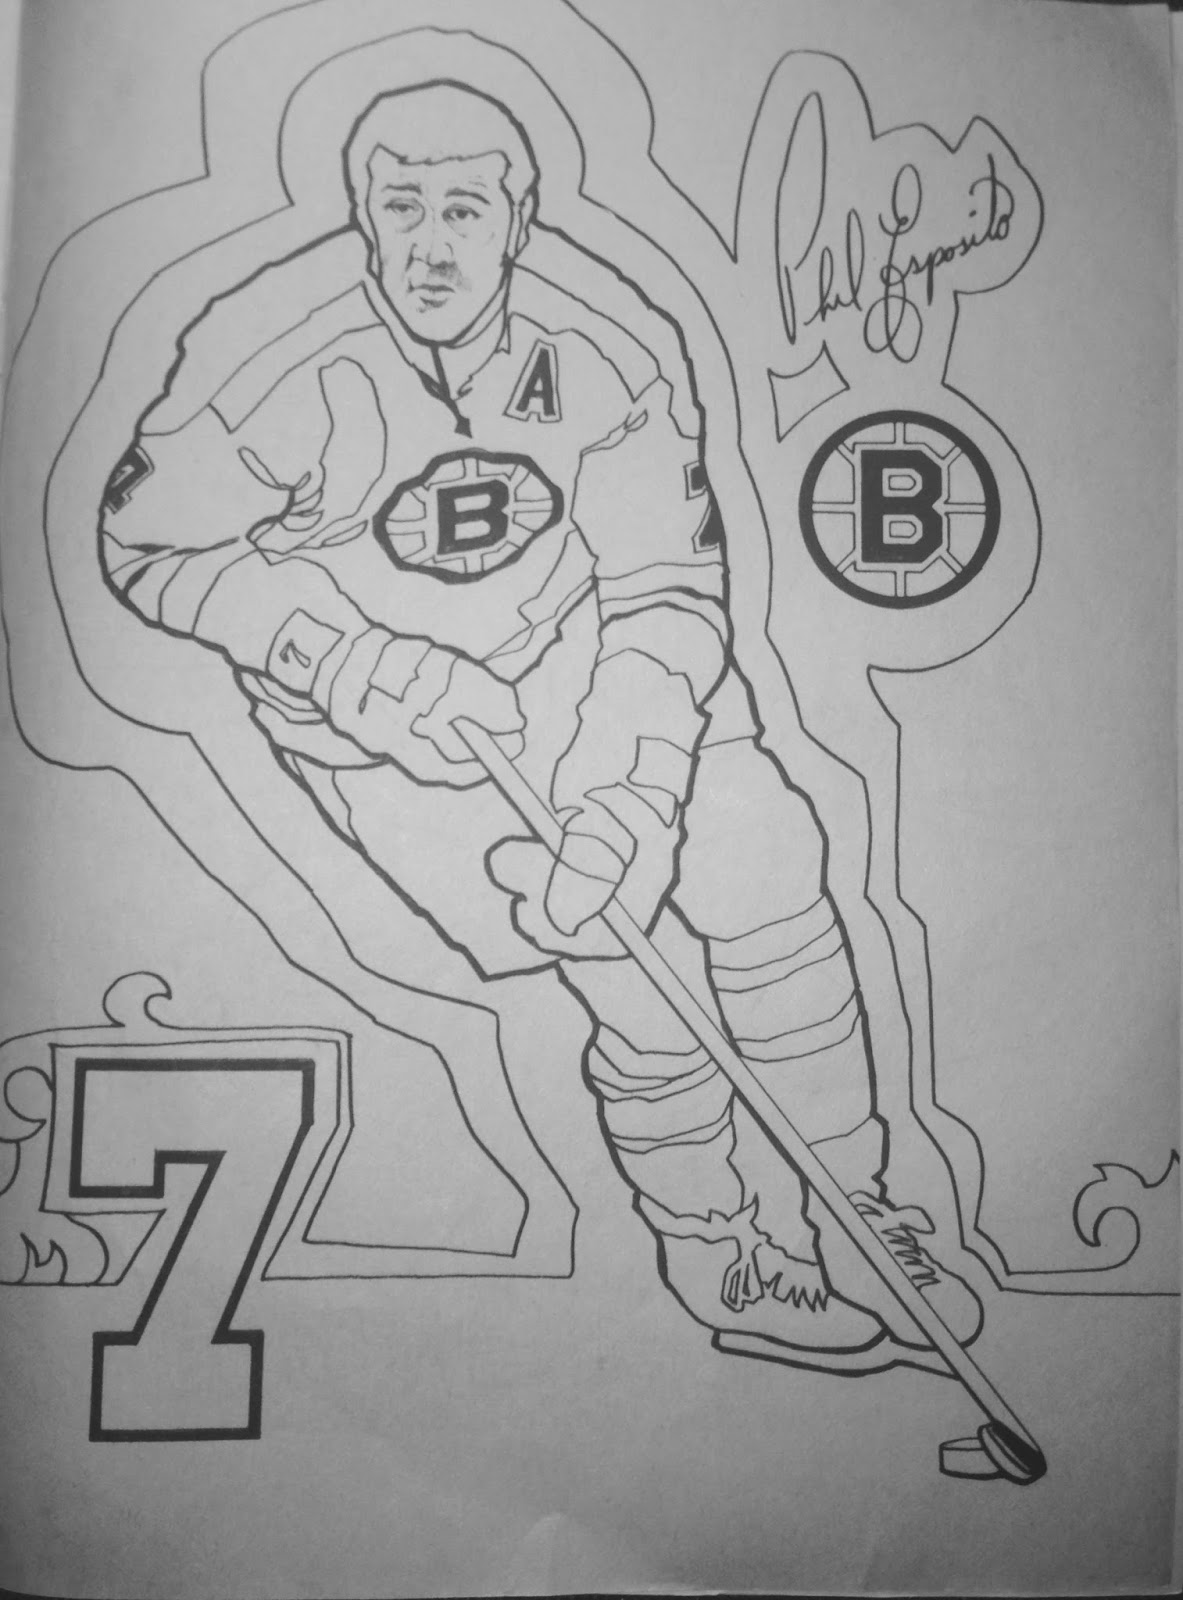 boston bruins coloring pictures bruins coloring pages at getcoloringscom free printable coloring boston bruins pictures